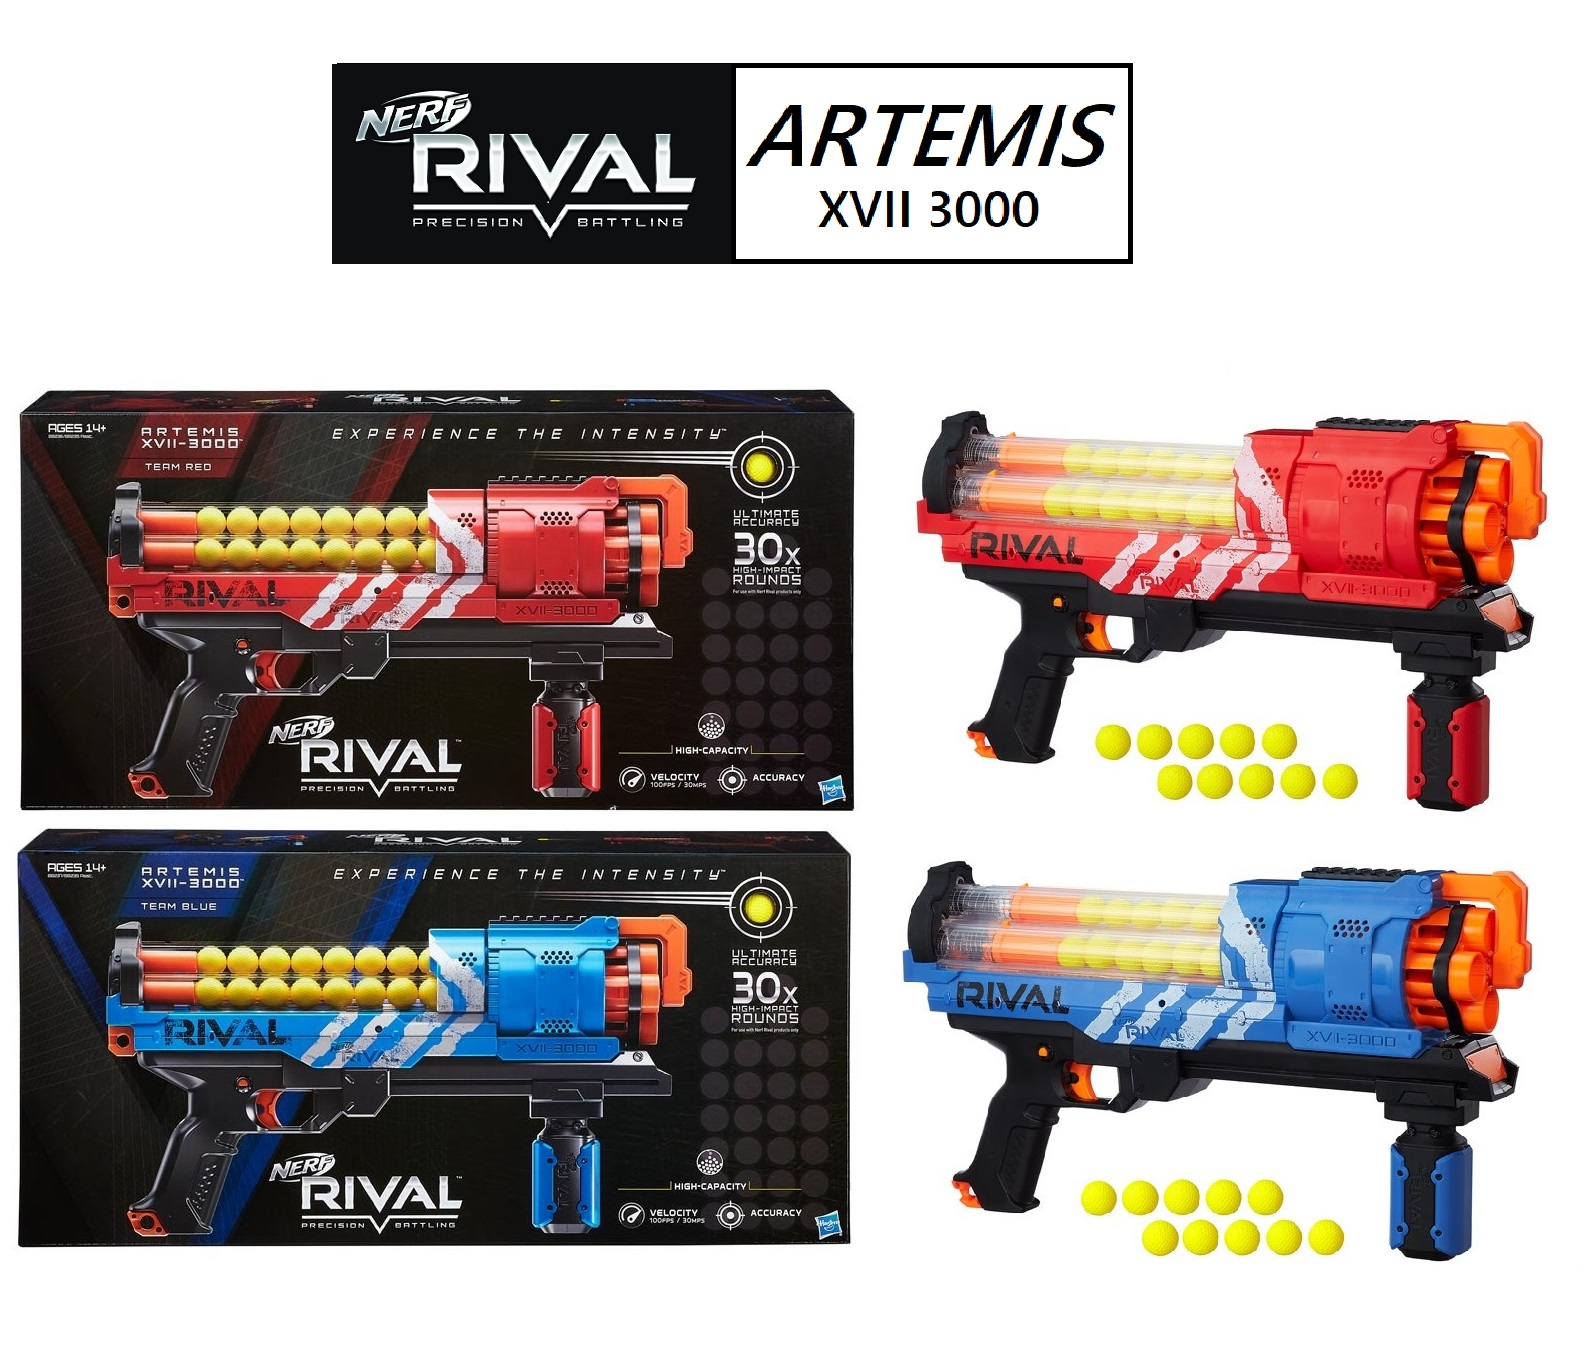 Huge news today in the NERF world A brand new RIVAL blaster called the ARTEMIS was spotted online available for pre order The pany advertising this is